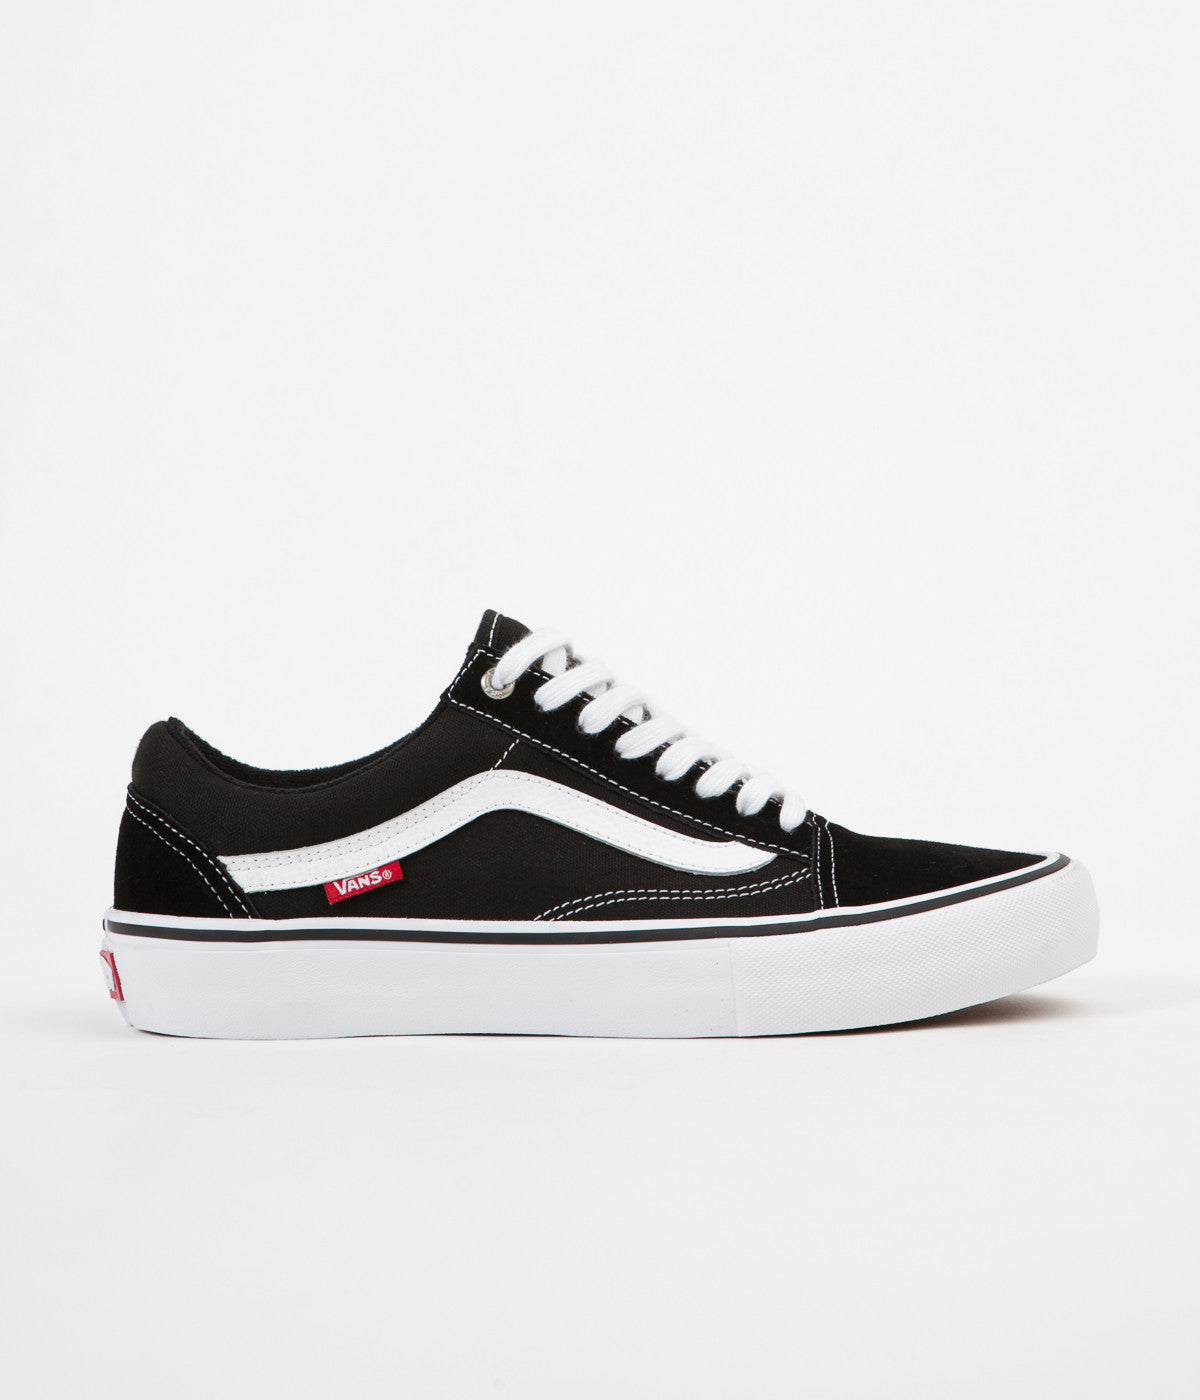 Vans Old Skool Pro Shoes - Black / White